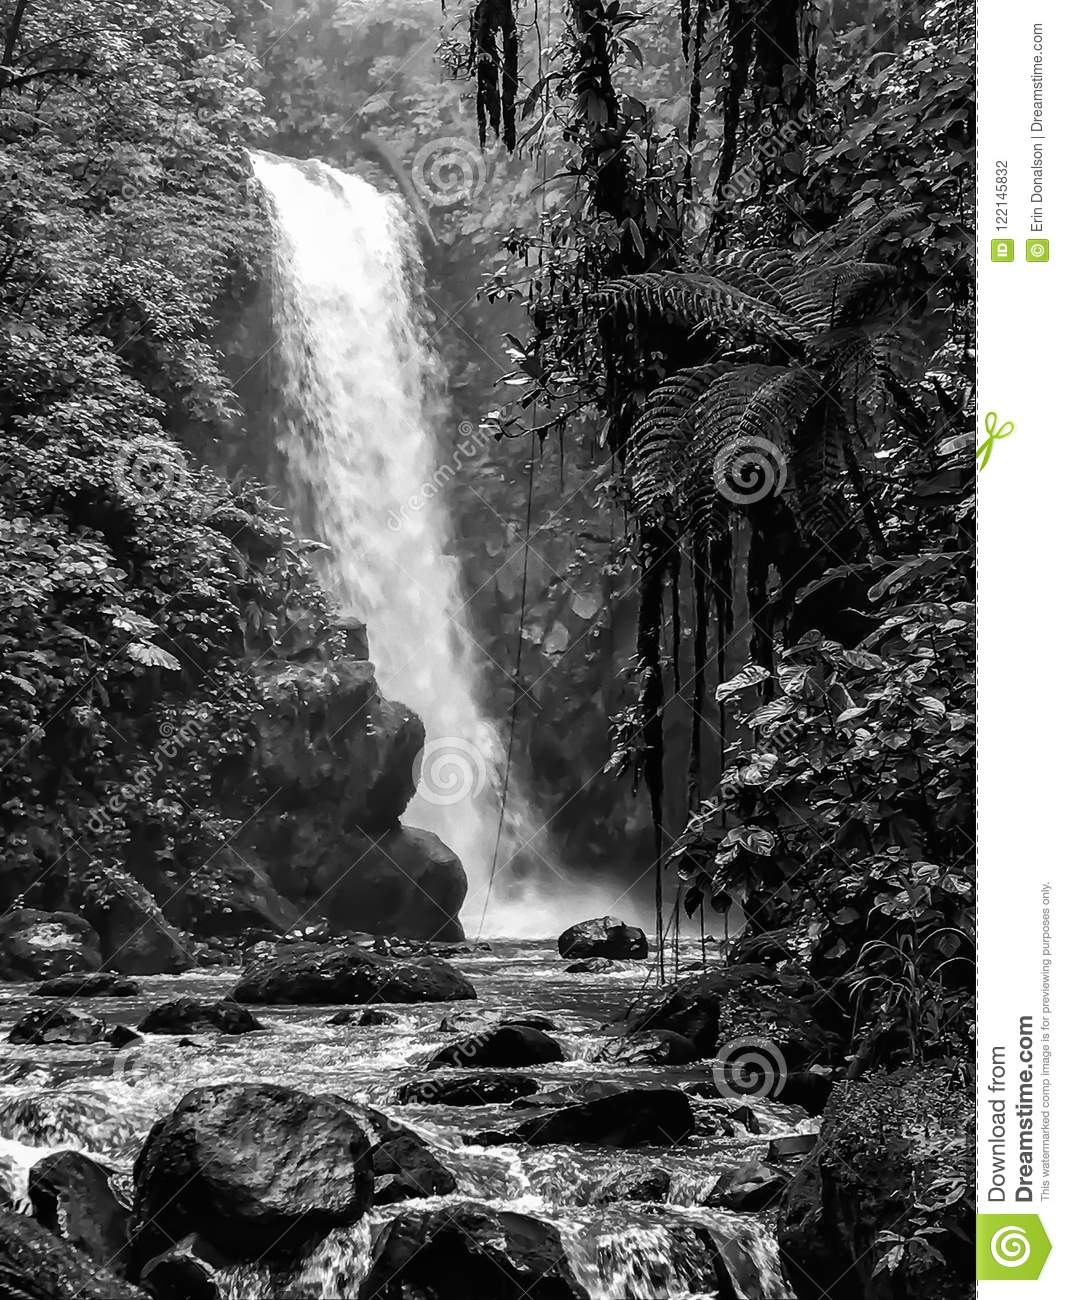 Black and white large jungle waterfall and river